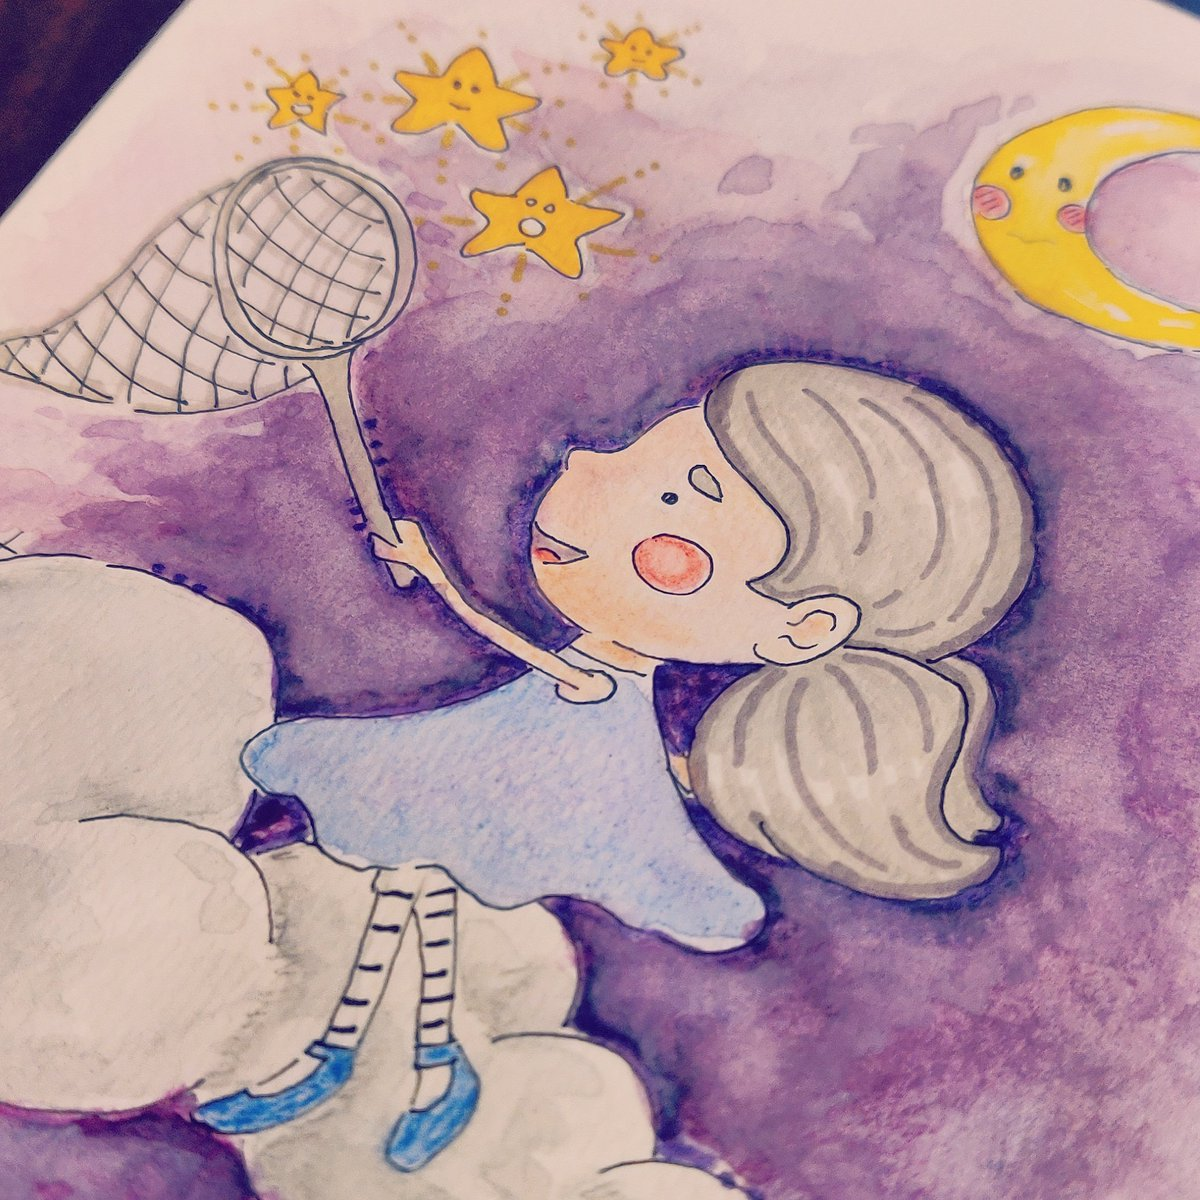 Catching stars ☁️🌟✨ #illustration #igersillustration #draw #drawings #igersart #ilovedrawing #disegno #disegnare #disegniamano #igdraws  #igart #igsketch #watercolor #watercoulor #acquerello #painting #sketch https://t.co/t2crpyvdFG